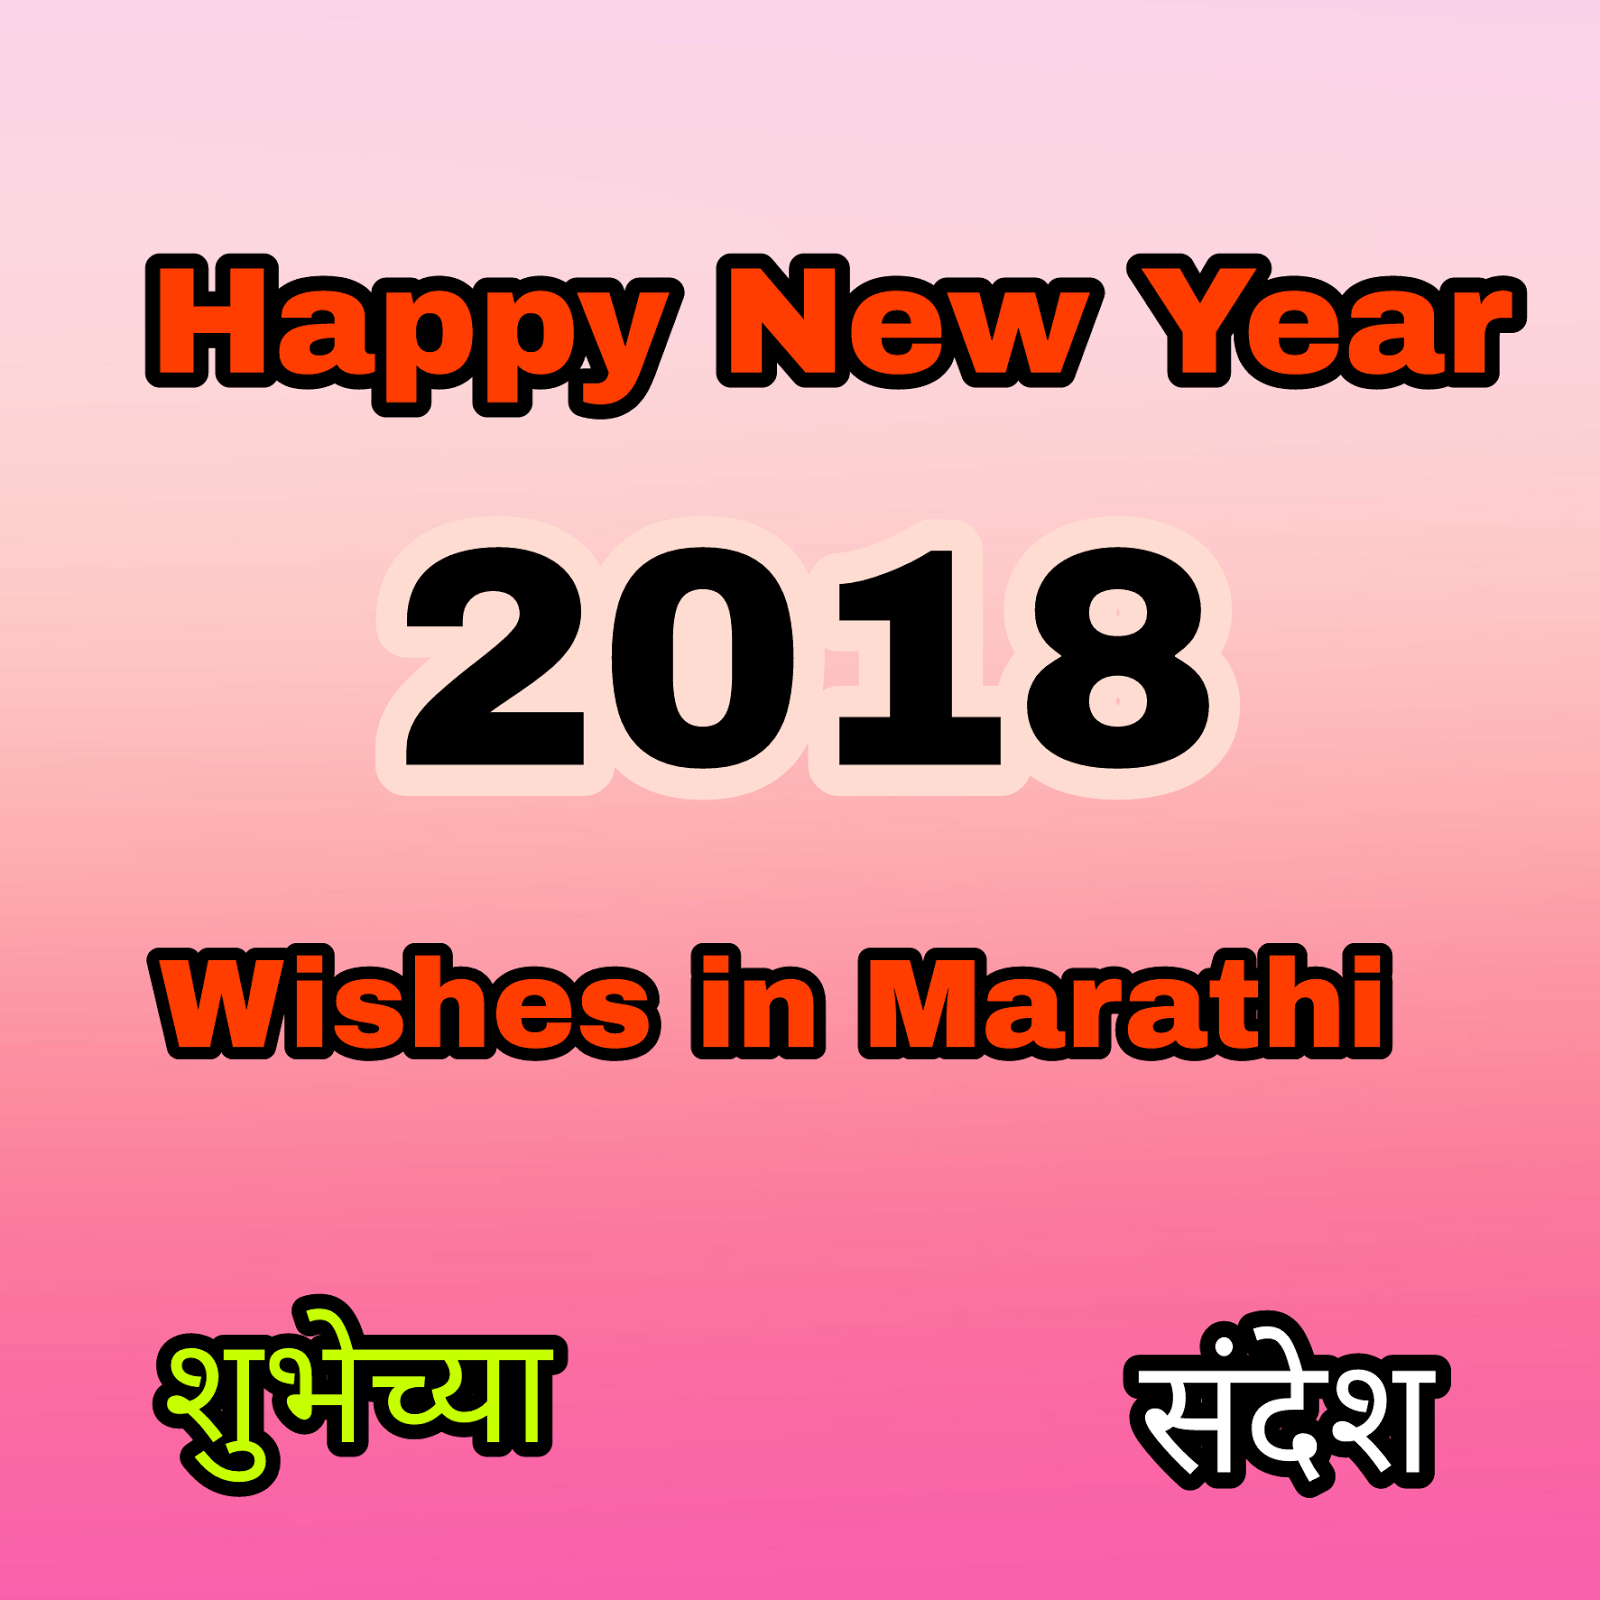 Happy new year wishes in marathi latest marathi shayri wishes happy new year wishes in marathi image massage card m4hsunfo